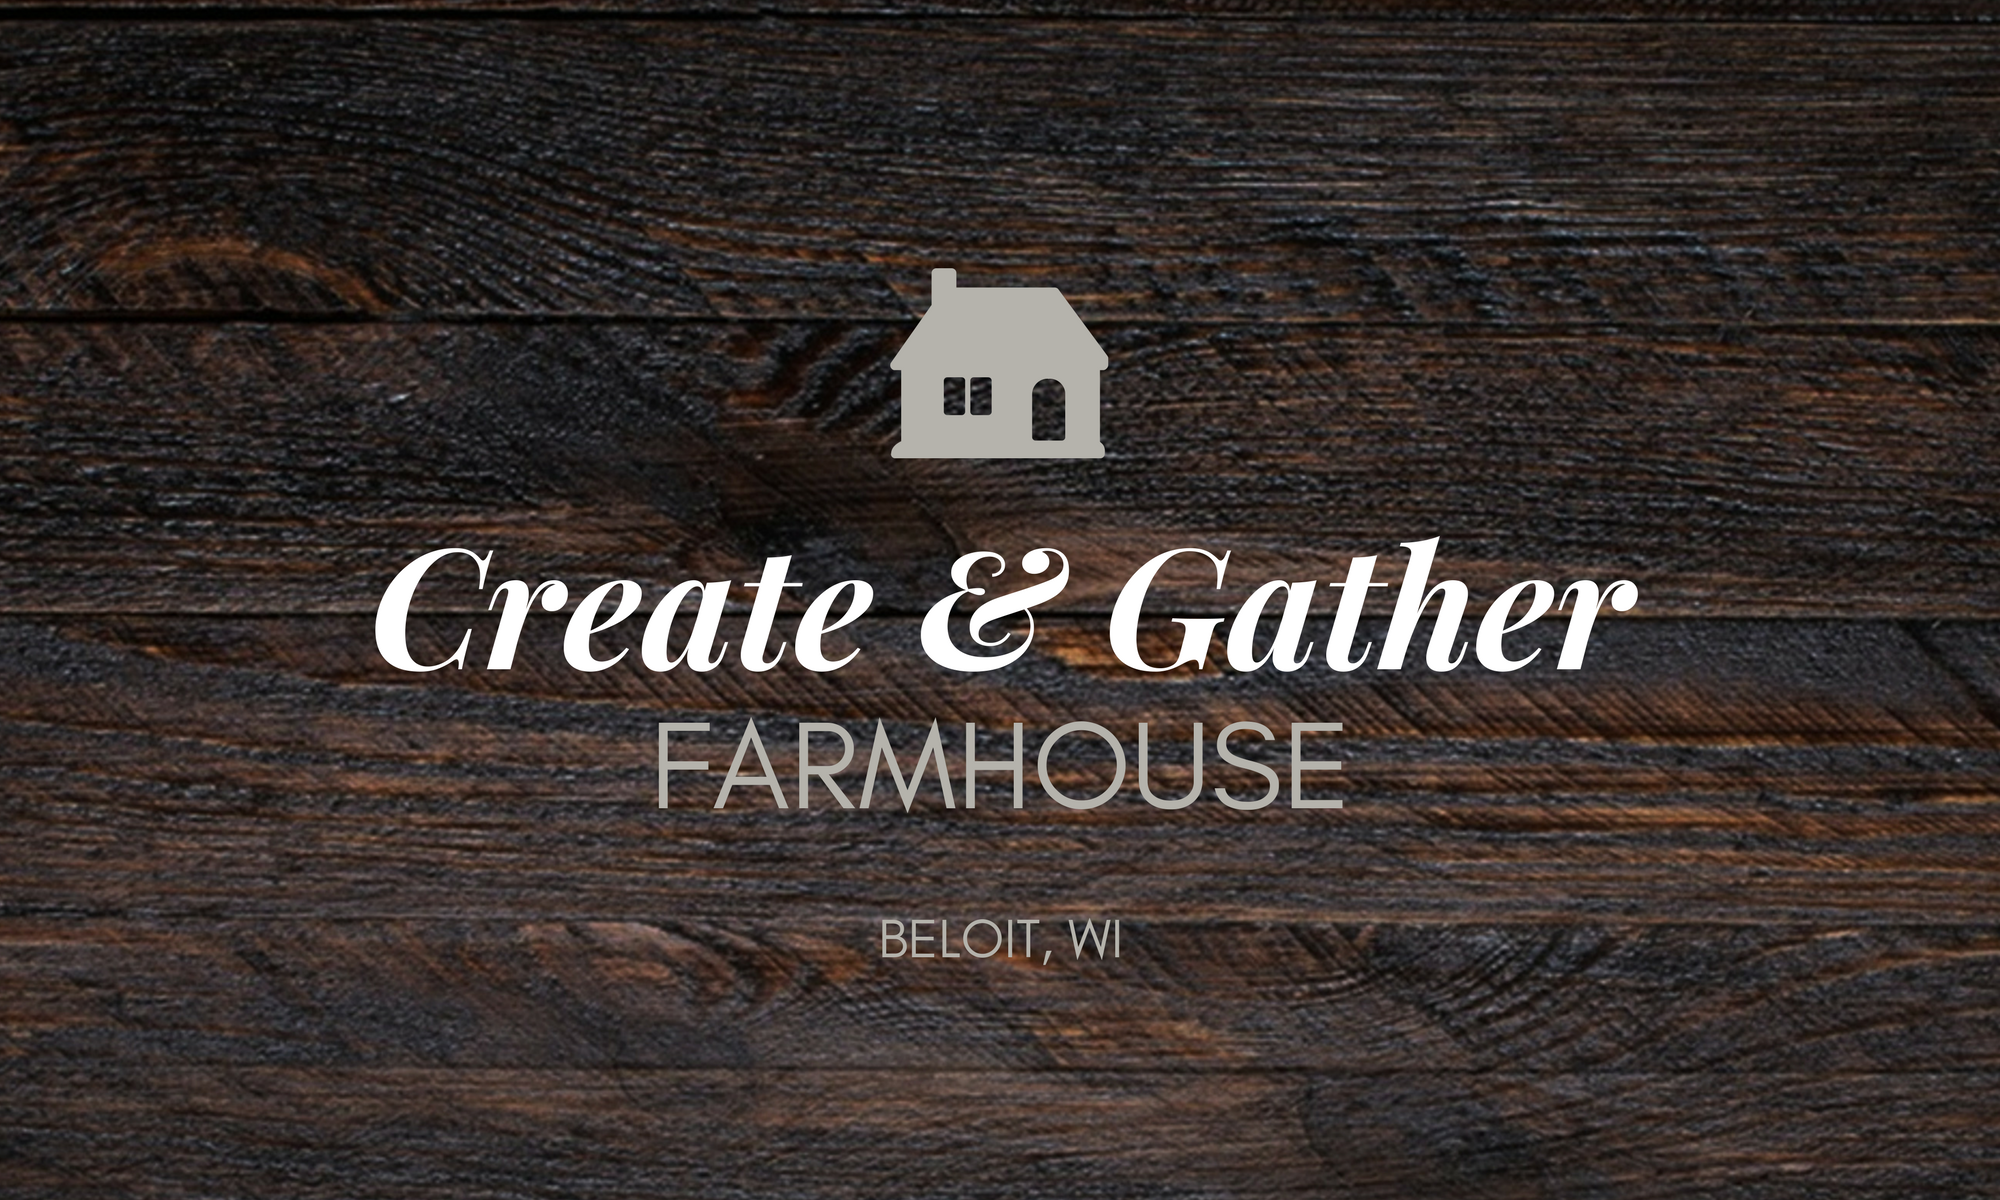 Create & Gather Farmhouse